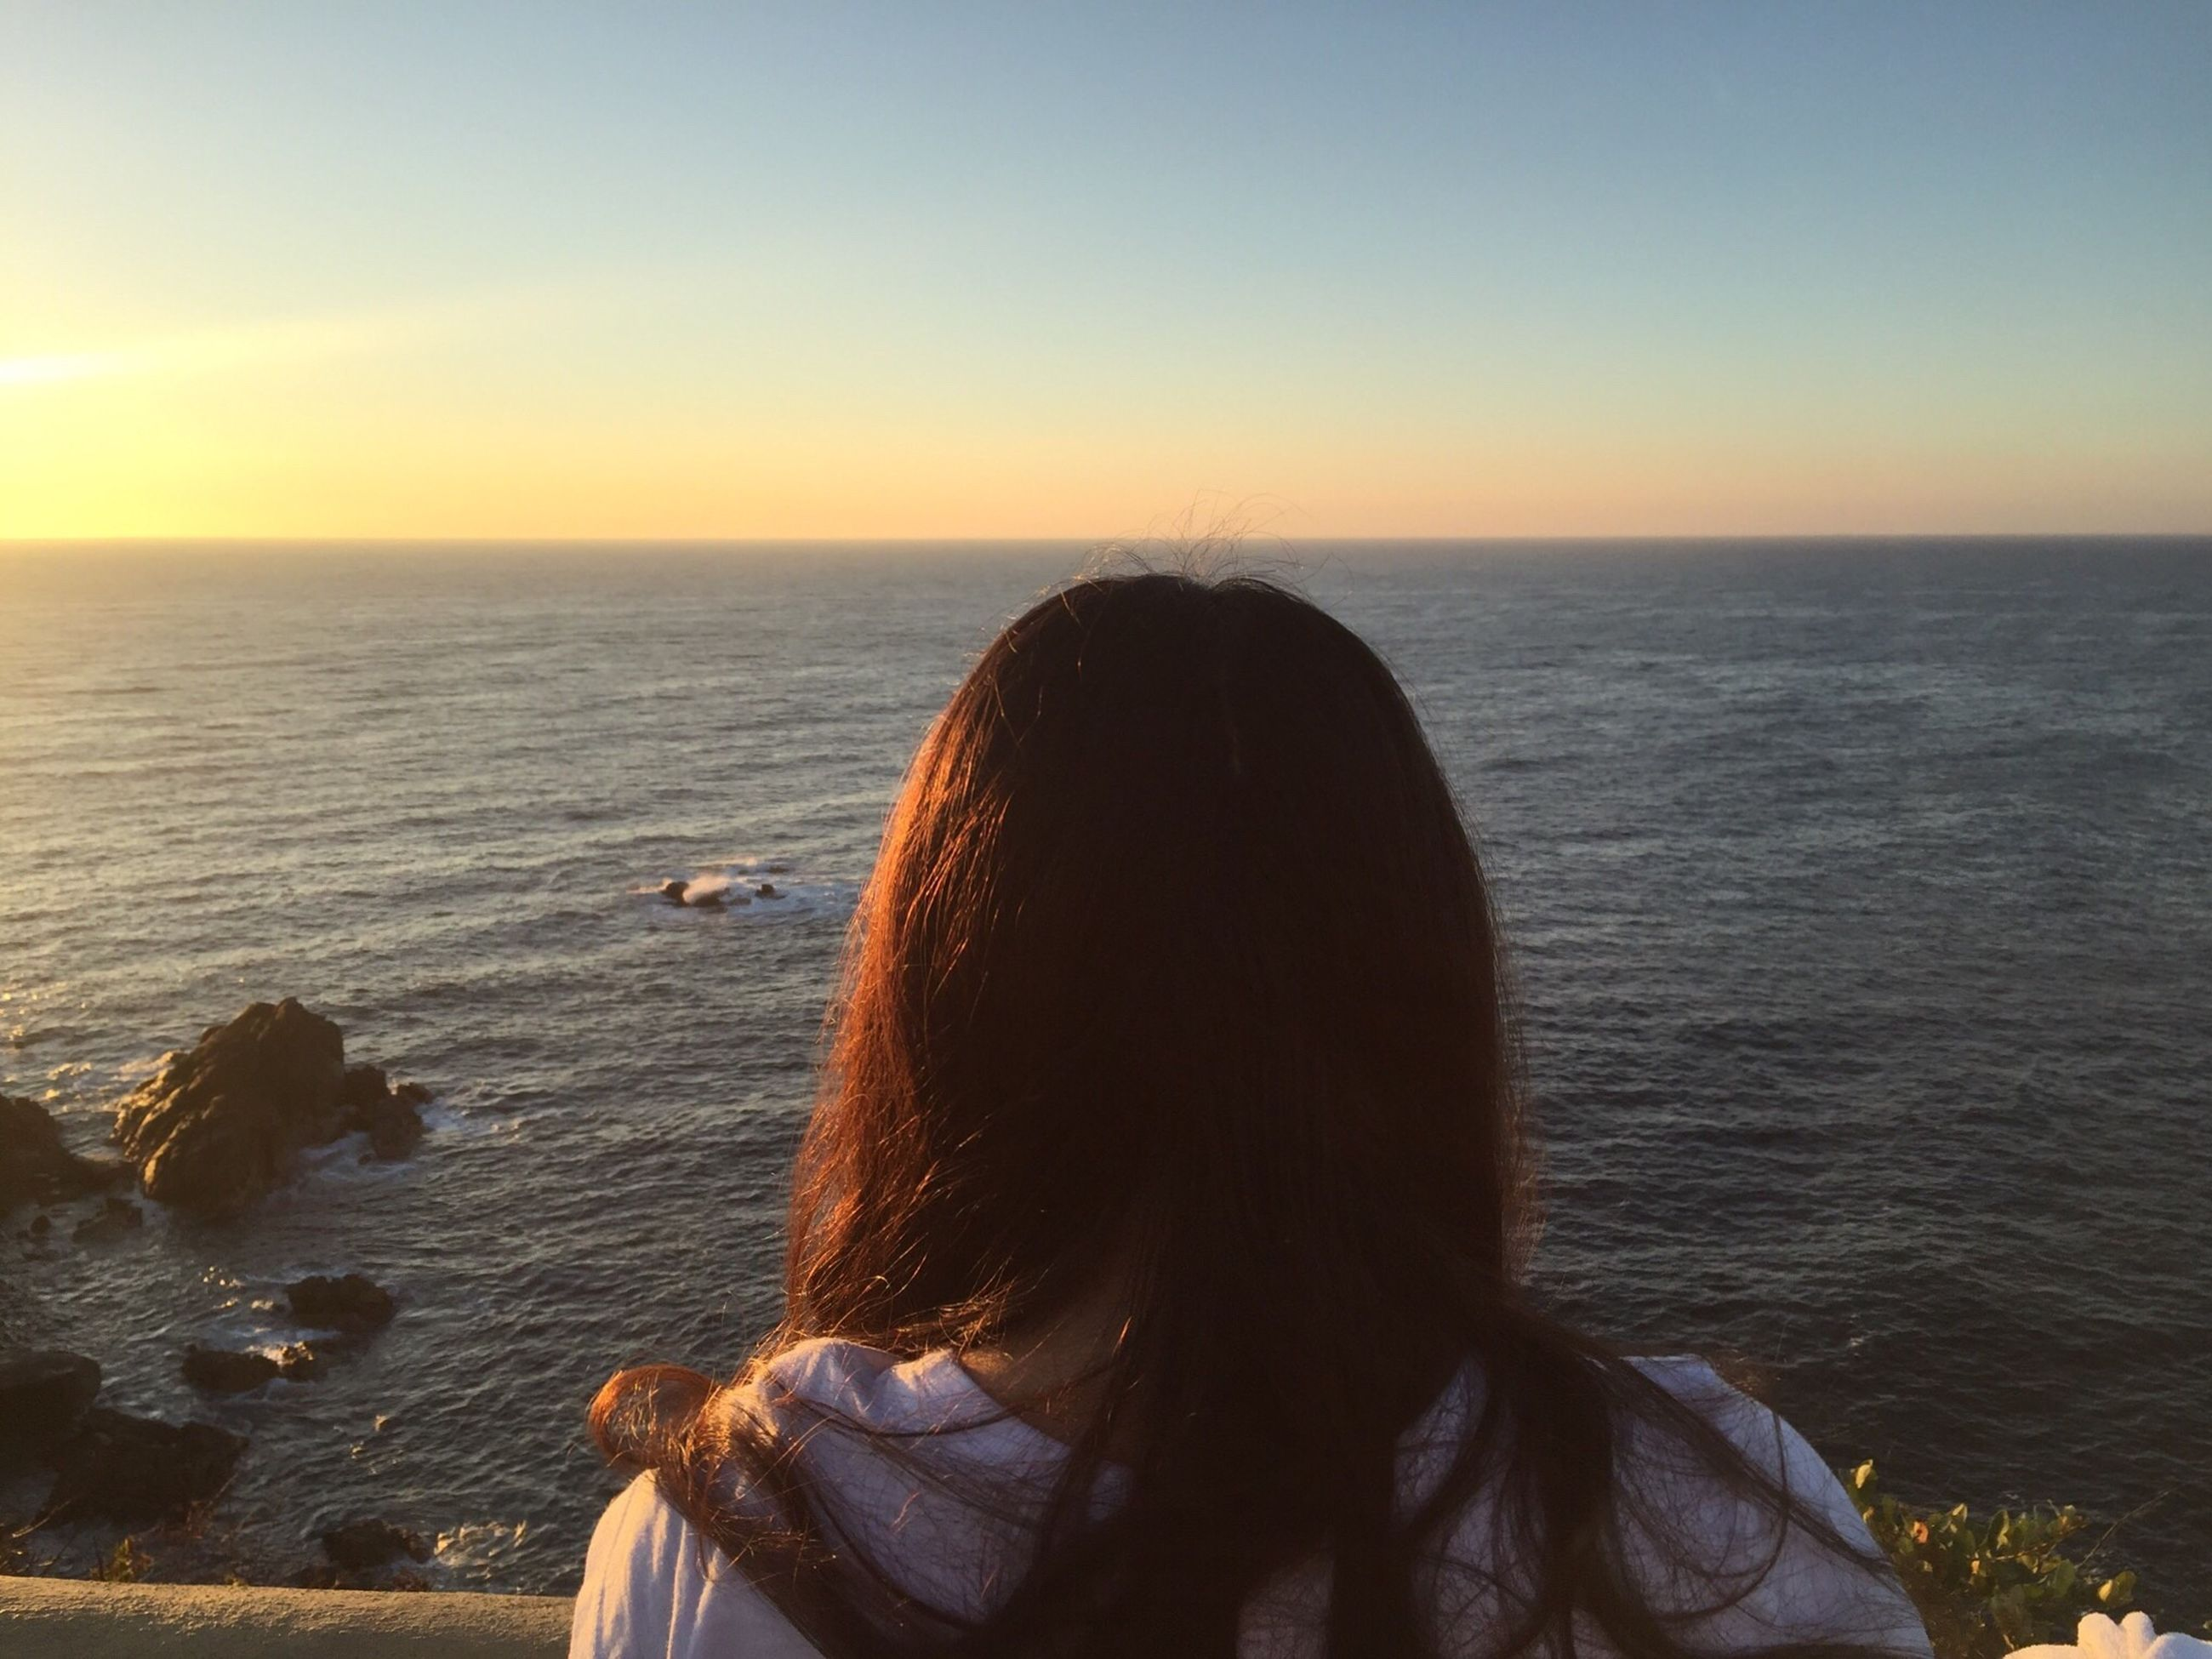 sea, horizon over water, rear view, headshot, sunset, water, real people, nature, scenics, lifestyles, beauty in nature, idyllic, one person, clear sky, outdoors, sky, tranquility, women, beach, close-up, day, people, adult